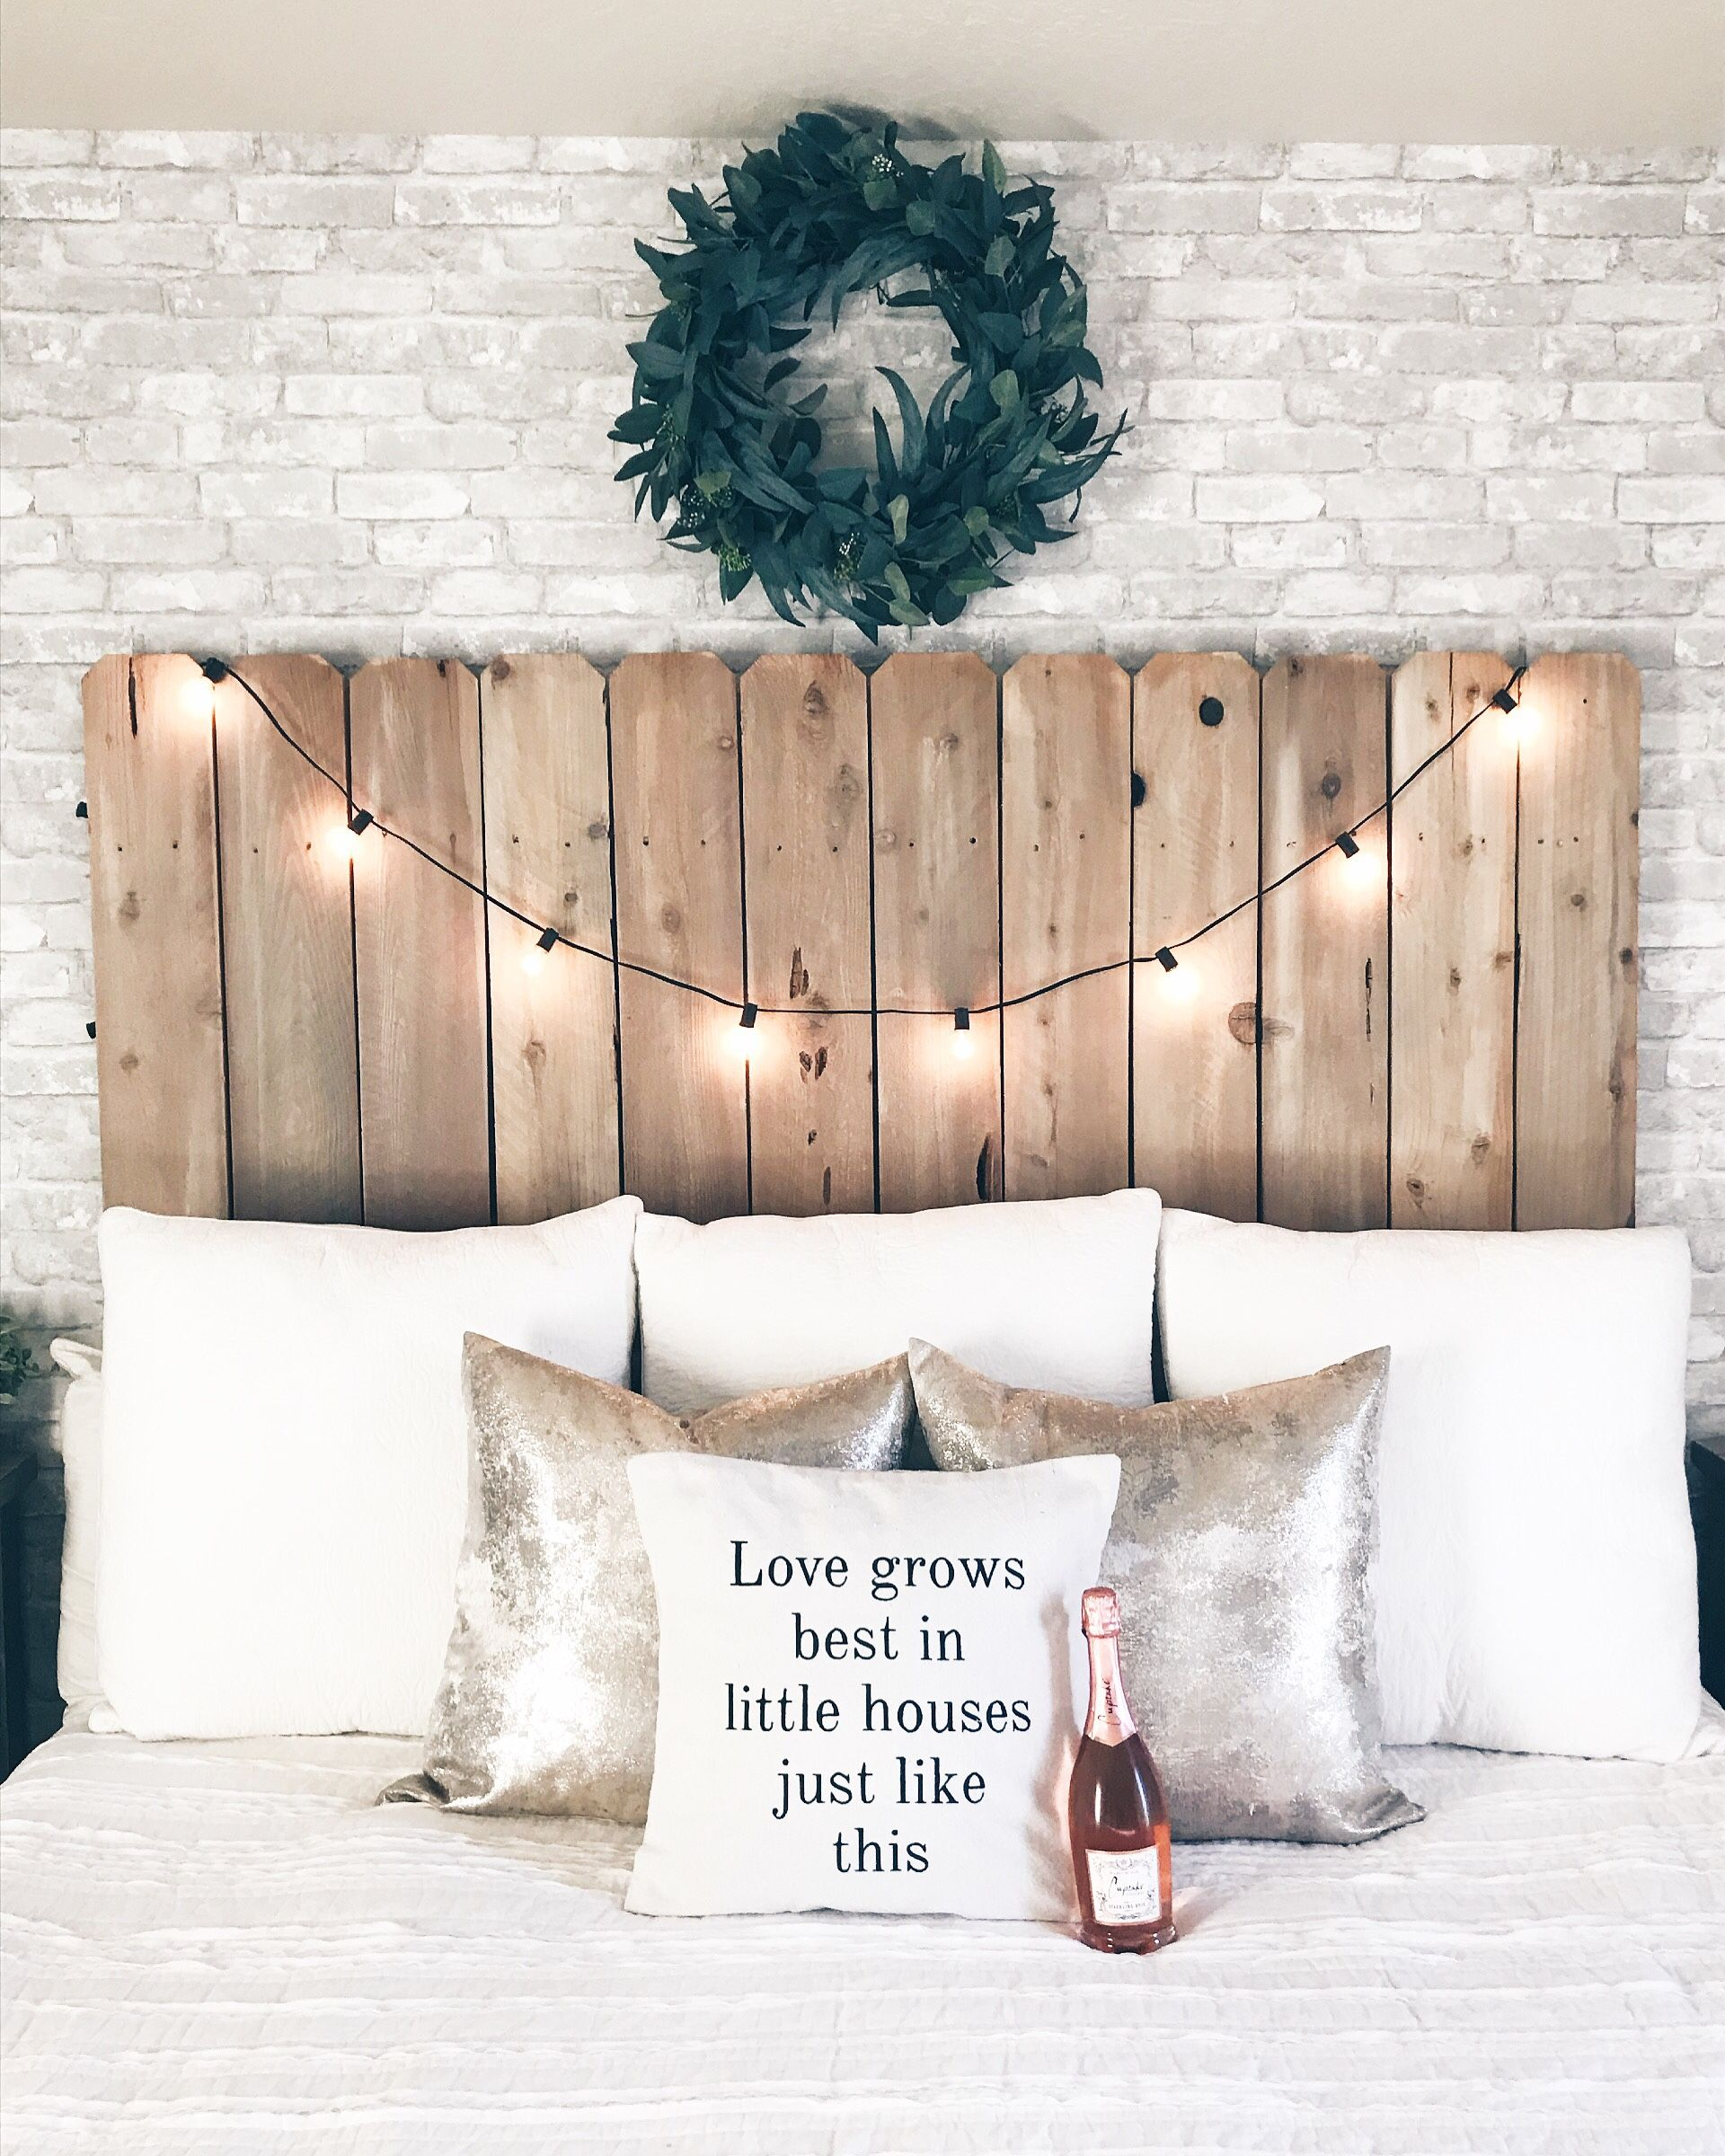 Diy Wooden Headboard For Under 100 Everyday Kacie Diy Wood Headboard Diy Headboard Wooden Wooden Headboard